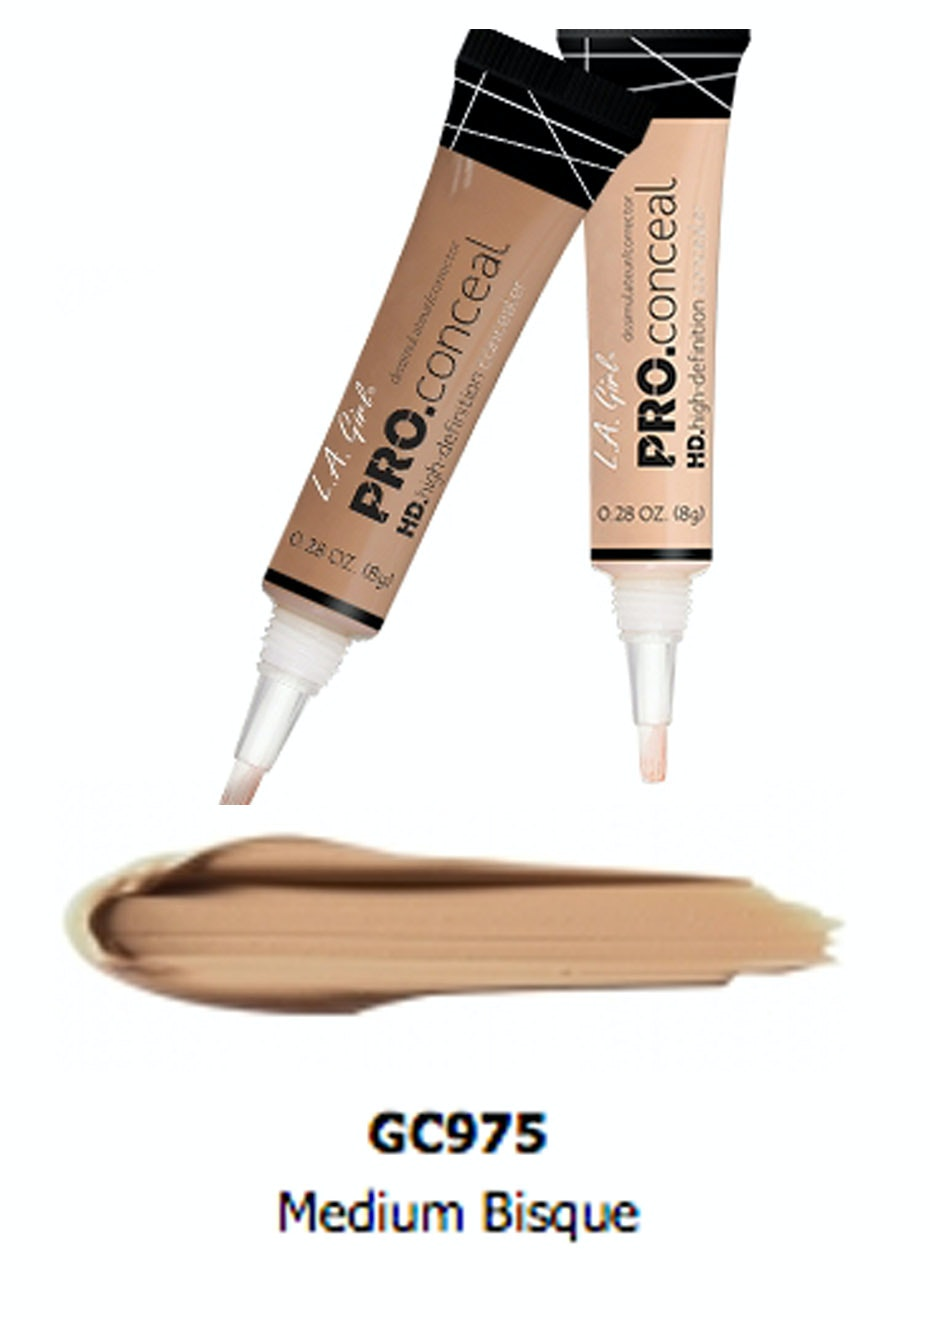 LA Girl Pro Concealer - Medium Bisque